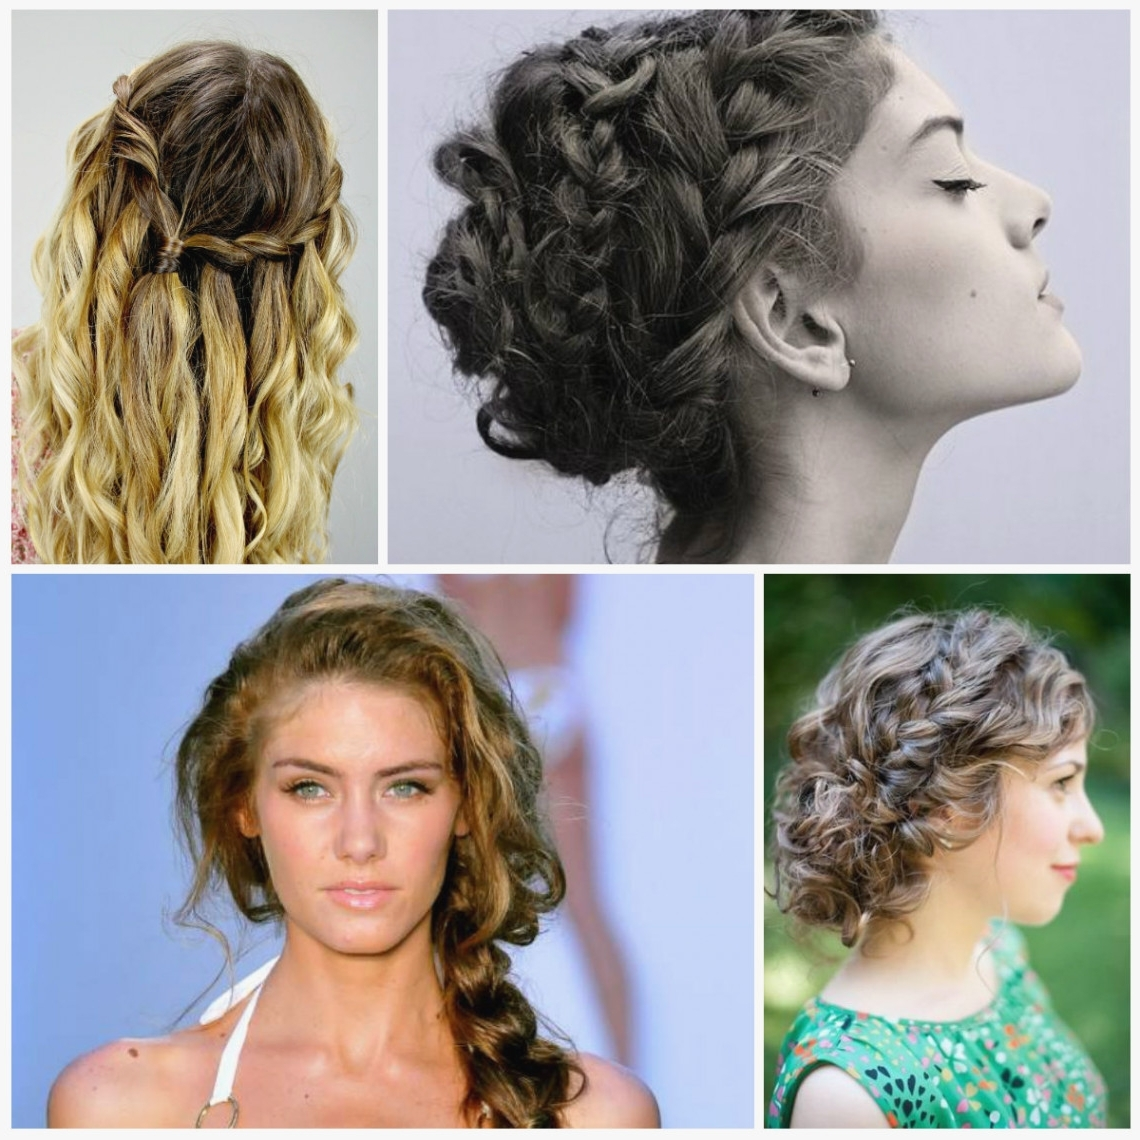 2018 Braided Hairstyles With Curls Inside 13 Good Curly Braided Hairstyles Ideas With Curly Braided Hairstyles (View 7 of 15)